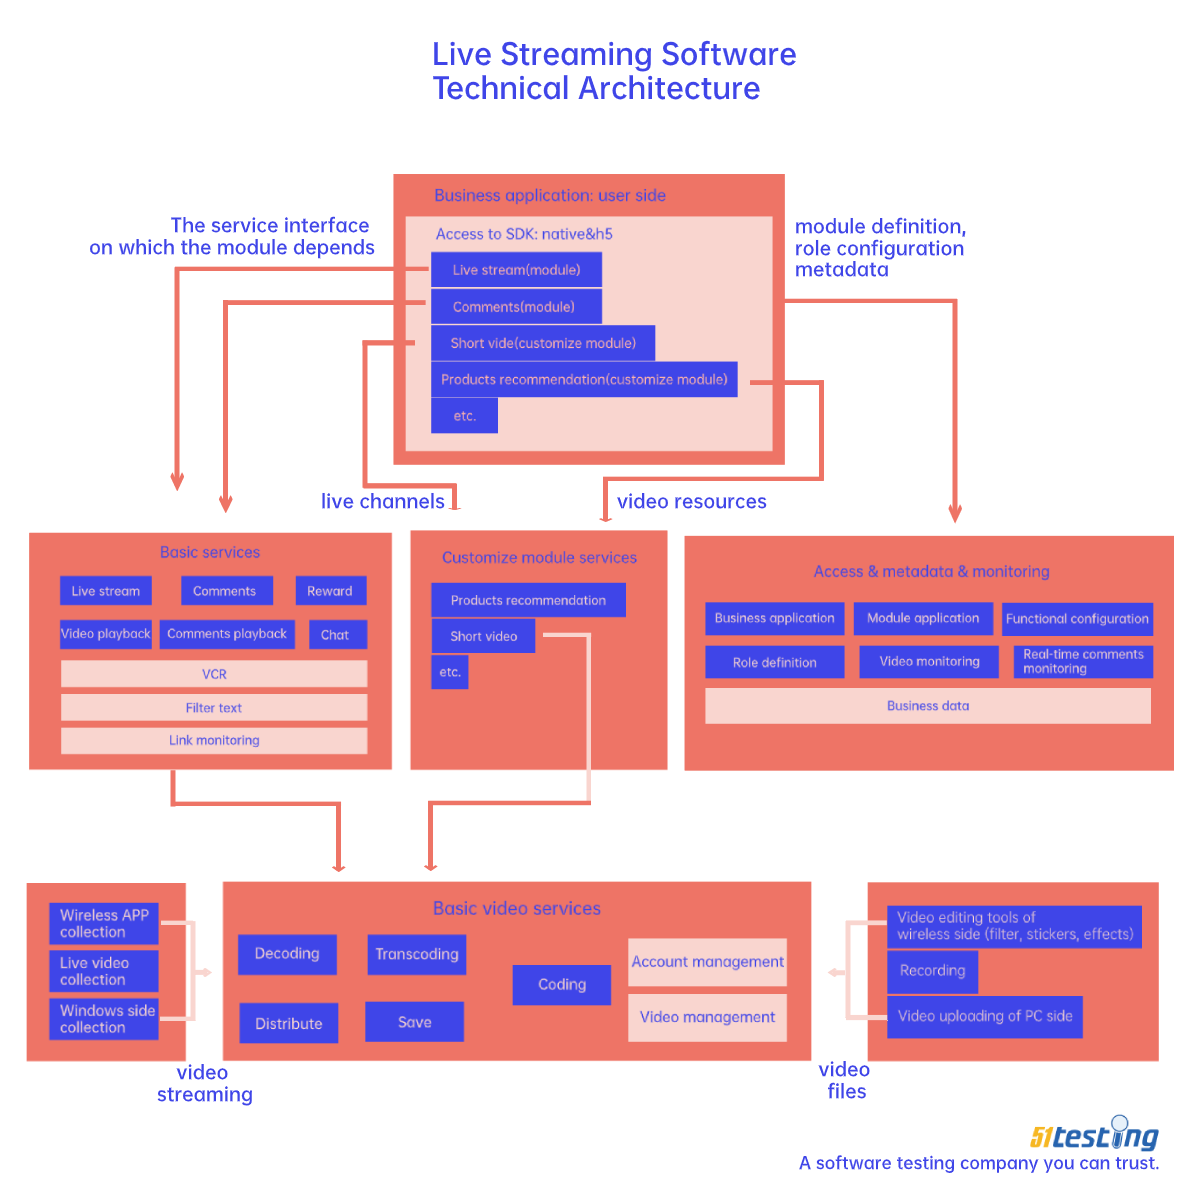 live streaming software technical architecture